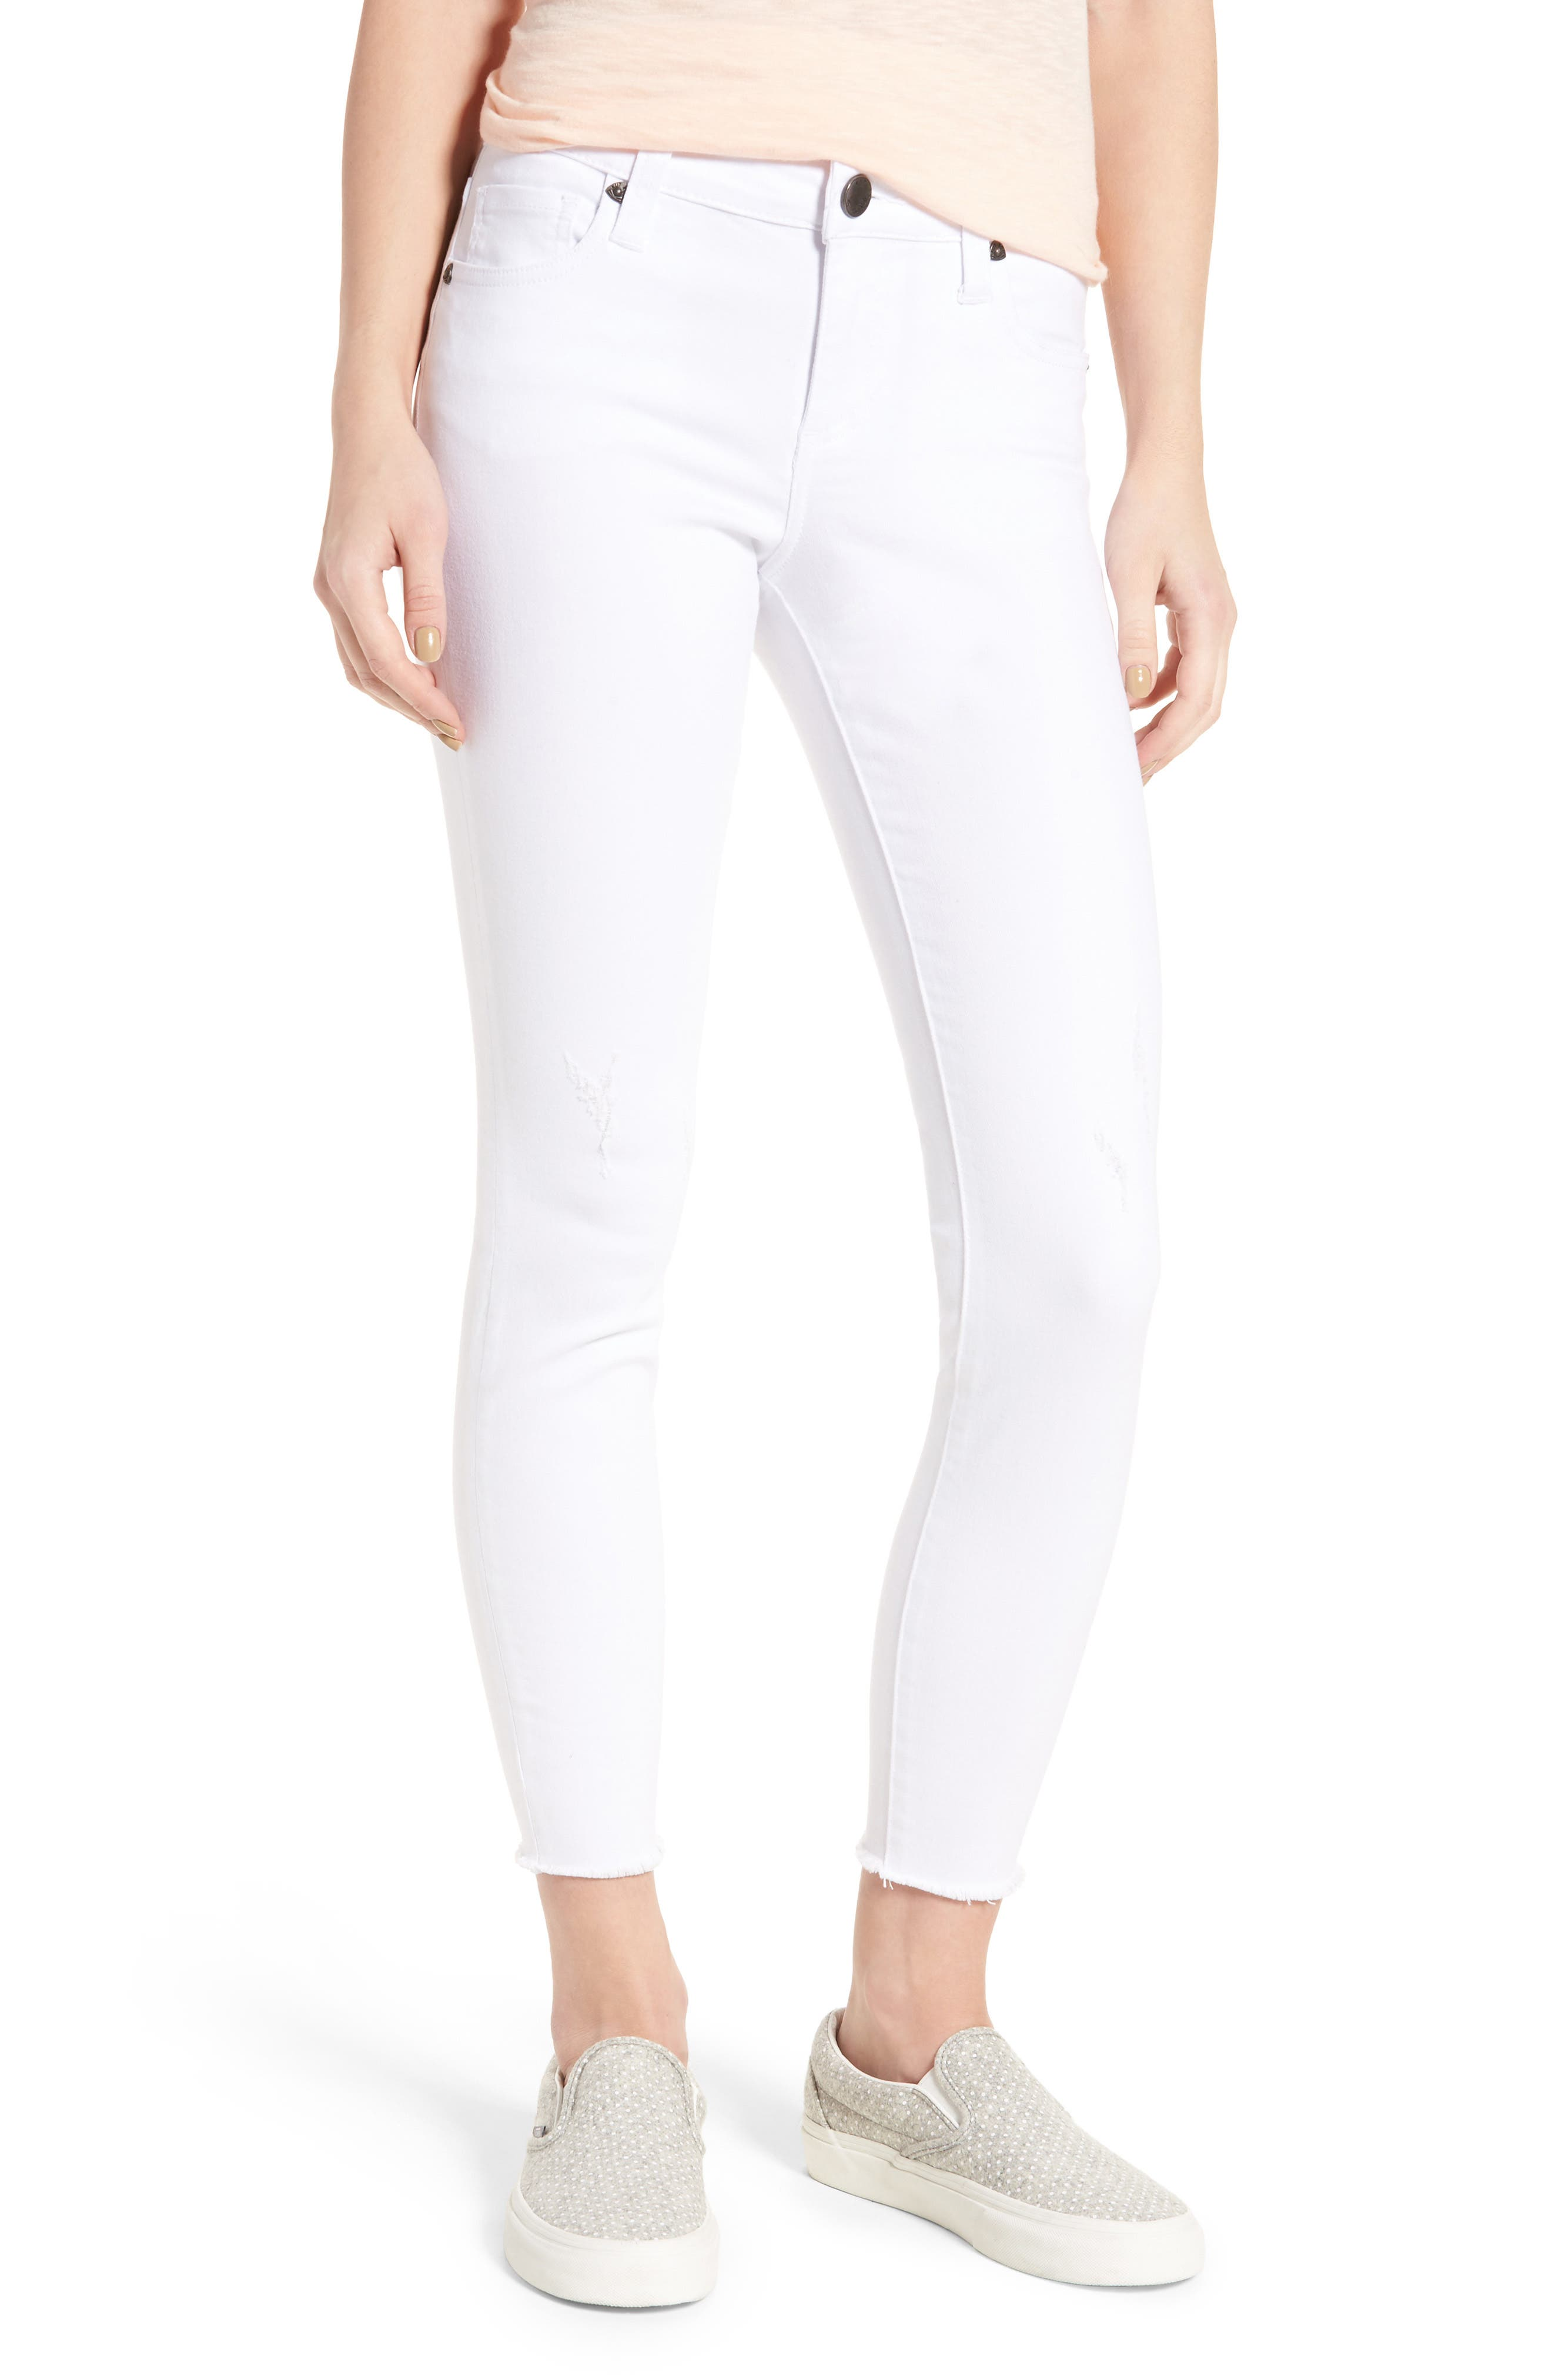 Alternate Image 1 Selected - KUT from the Kloth Connie Skinny Jeans